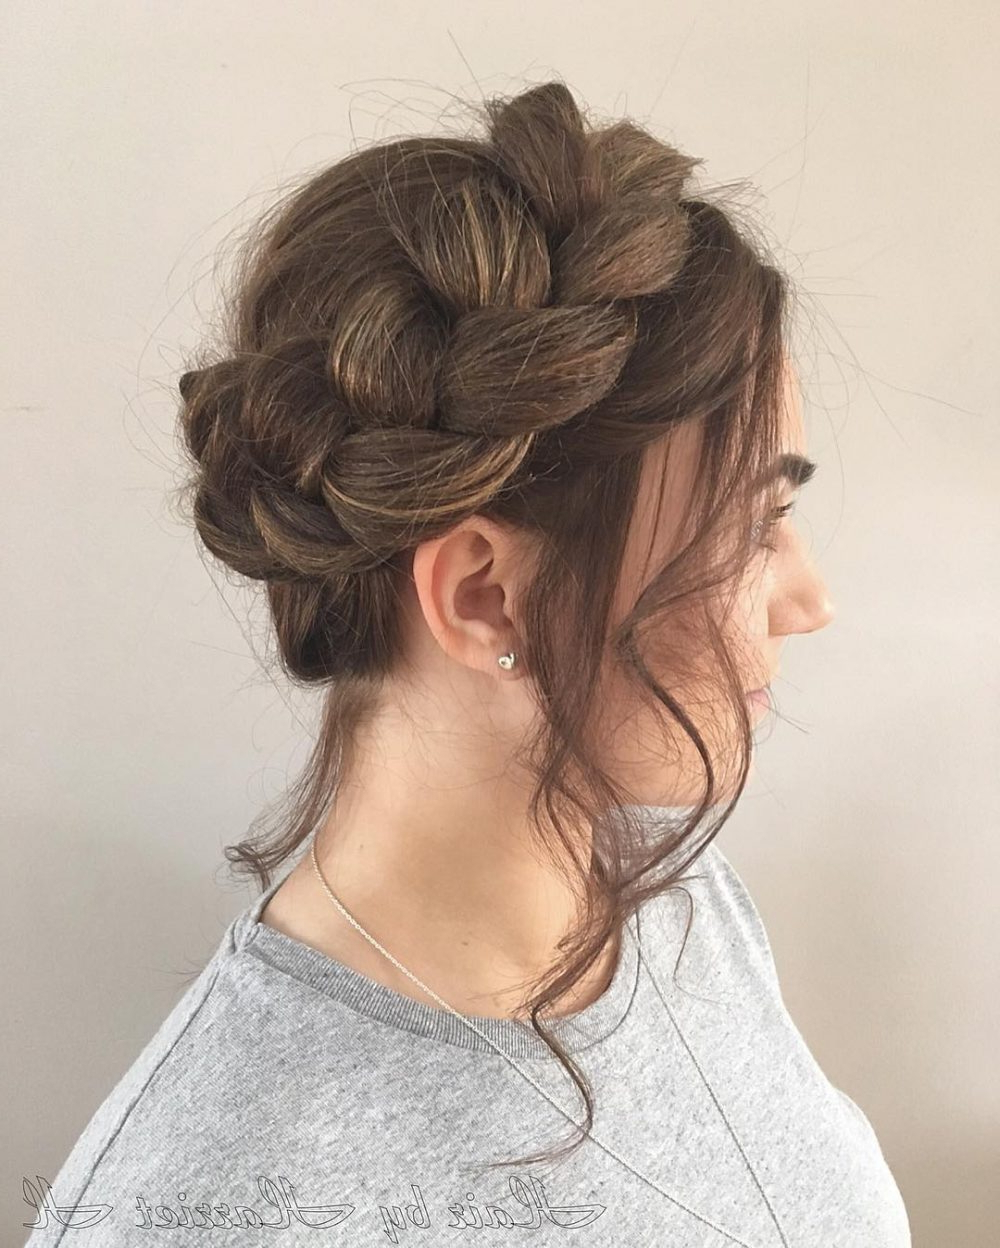 Favorite Multi Braid Updo Hairstyles Inside 29 Gorgeous Braided Updo Ideas For  (View 11 of 20)